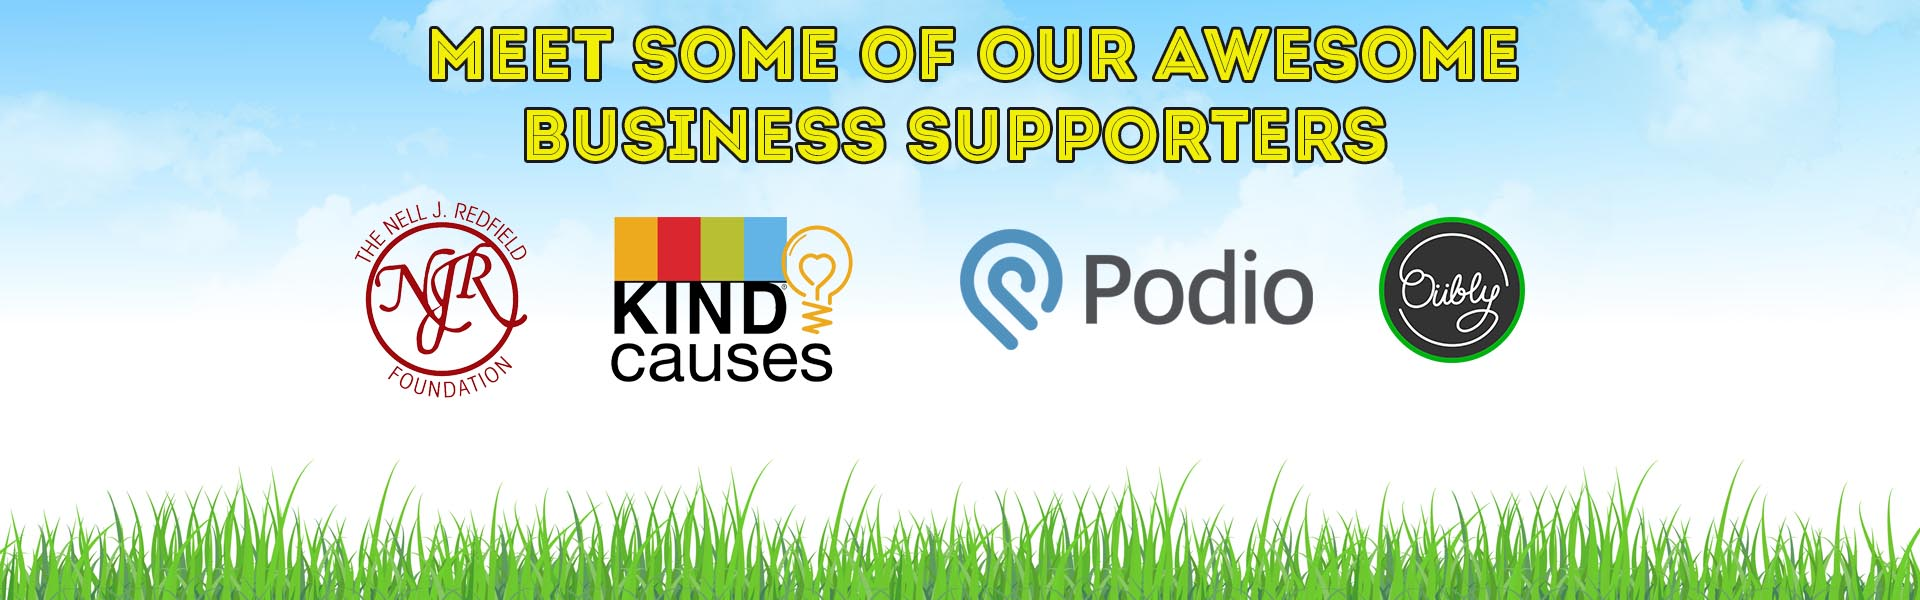 business-supporters